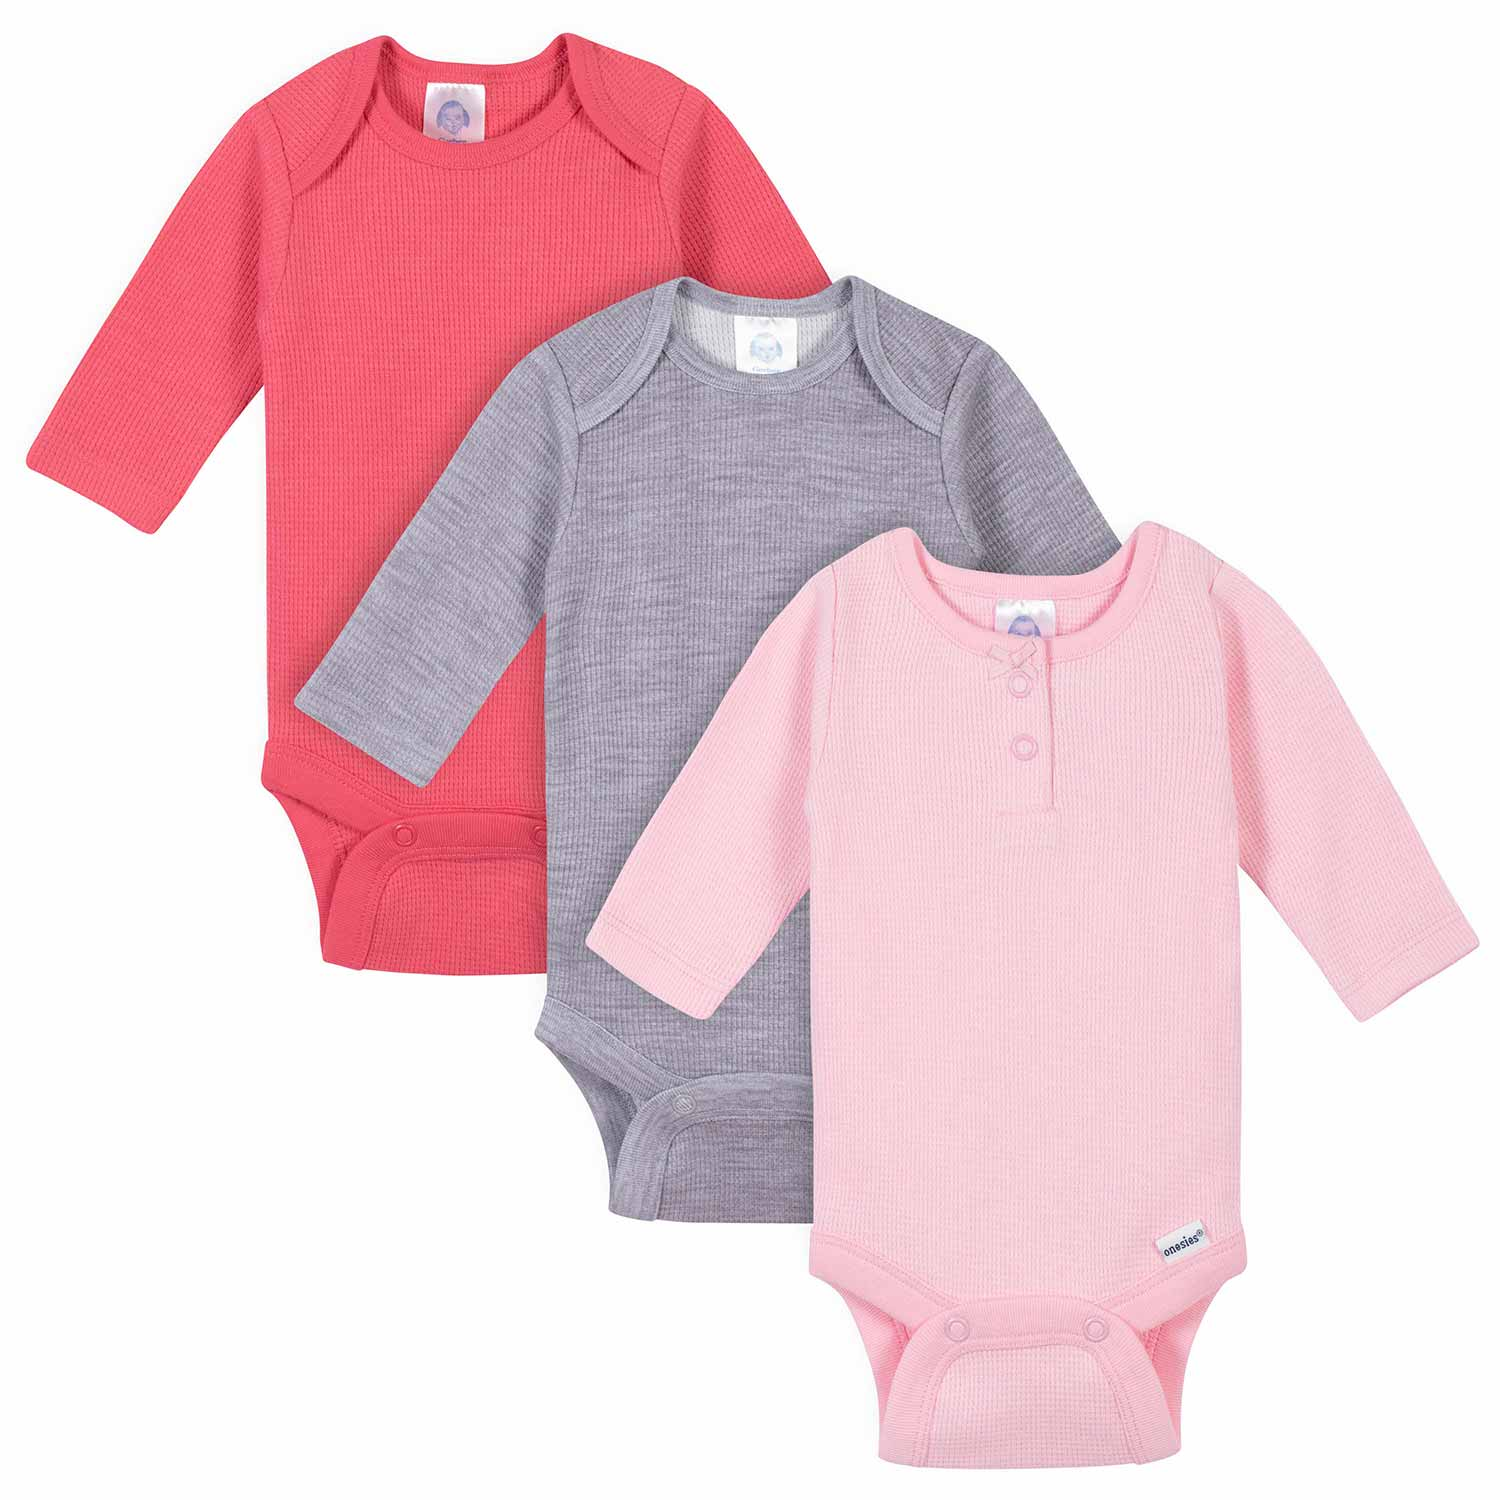 Gerber® 3-Pack Baby Girls Solid Thermal Long Sleeve Onesies® Bodysuits-Gerber Childrenswear